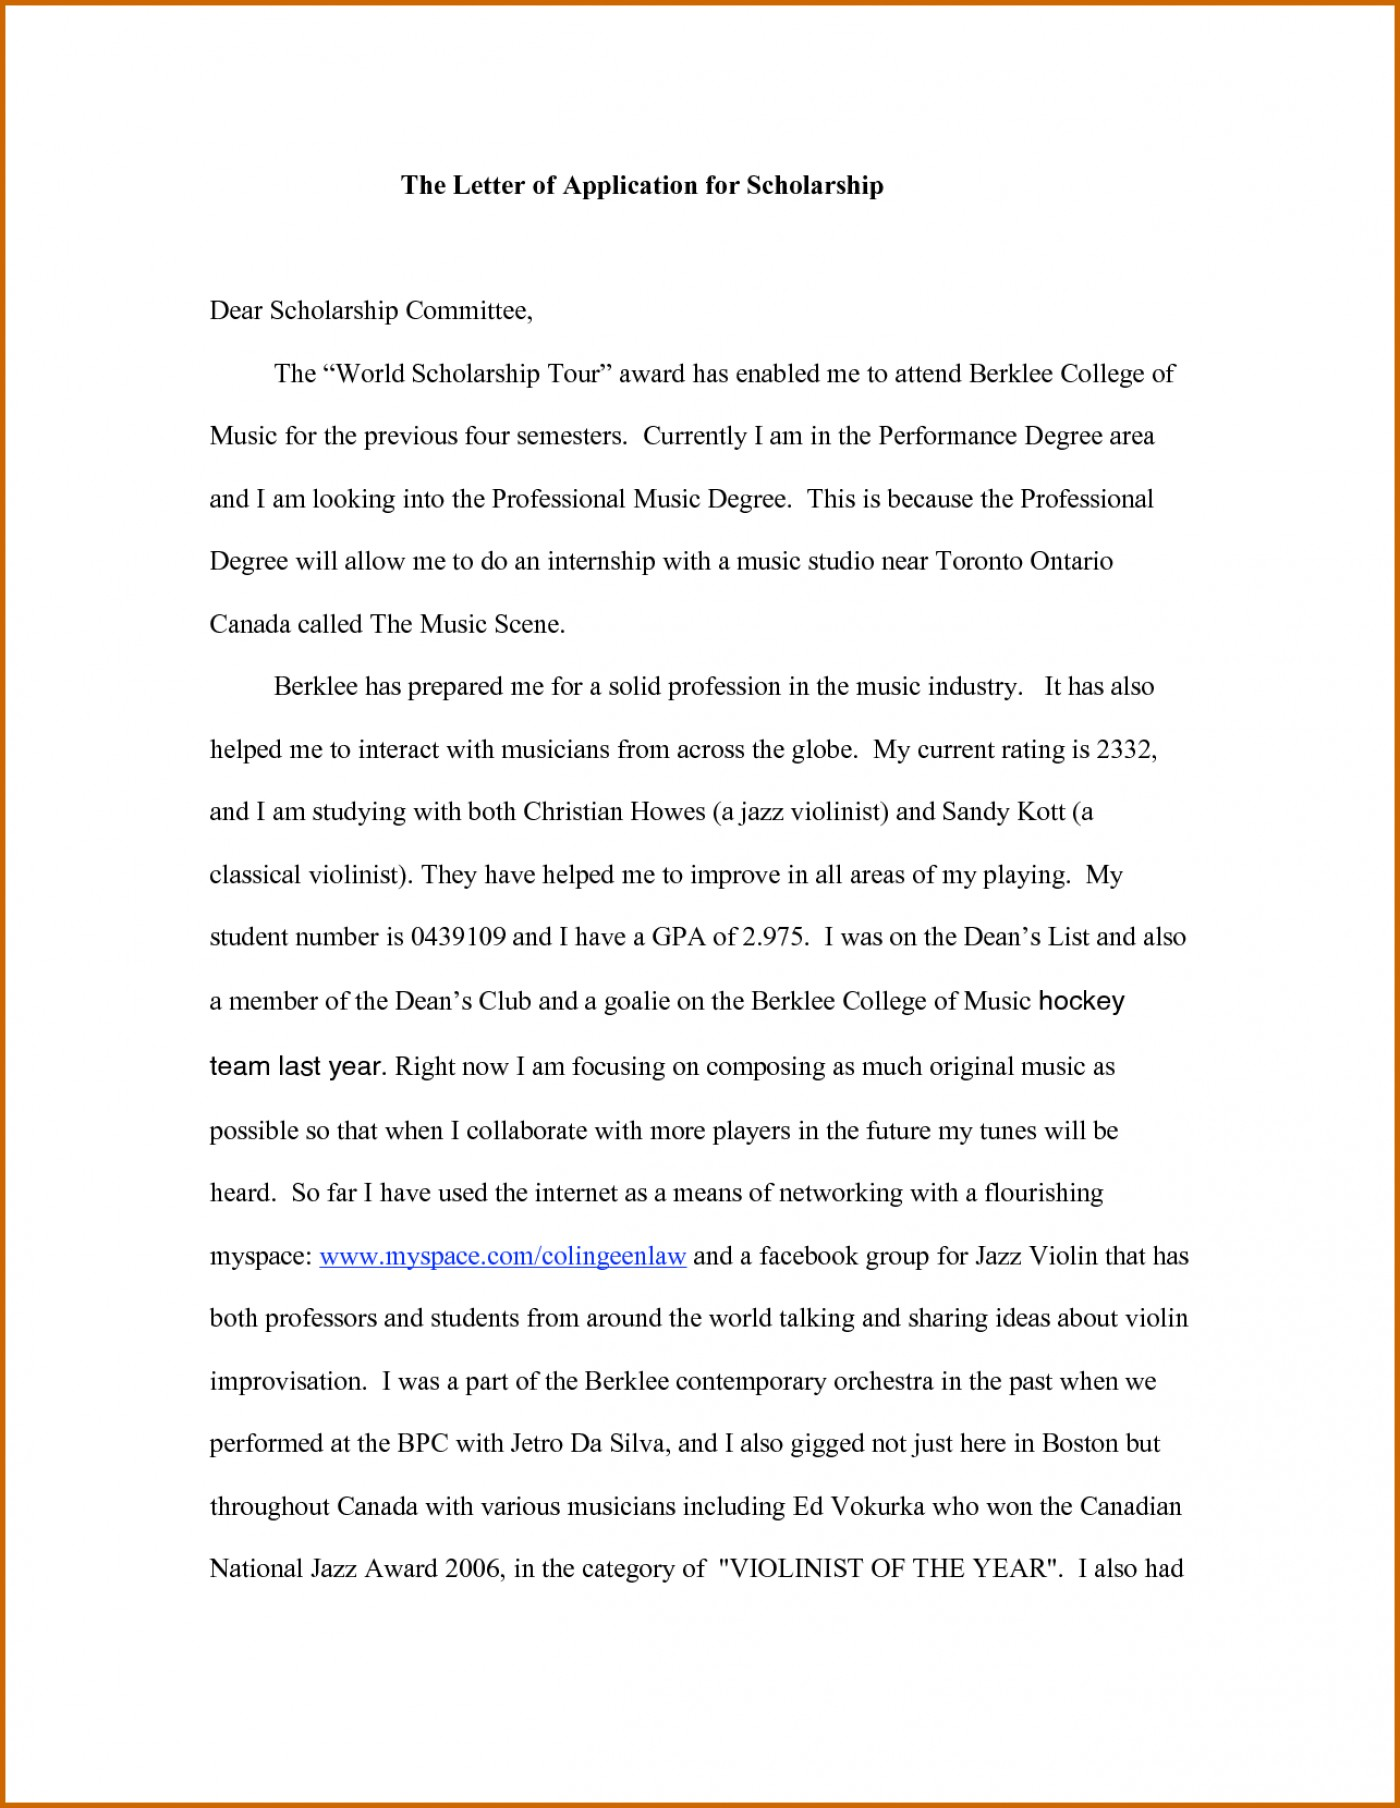 009 Essay Example How To Write Application For Scholarship Unusual Essays Tips 2017 Flinn Prompts Gilman 1400